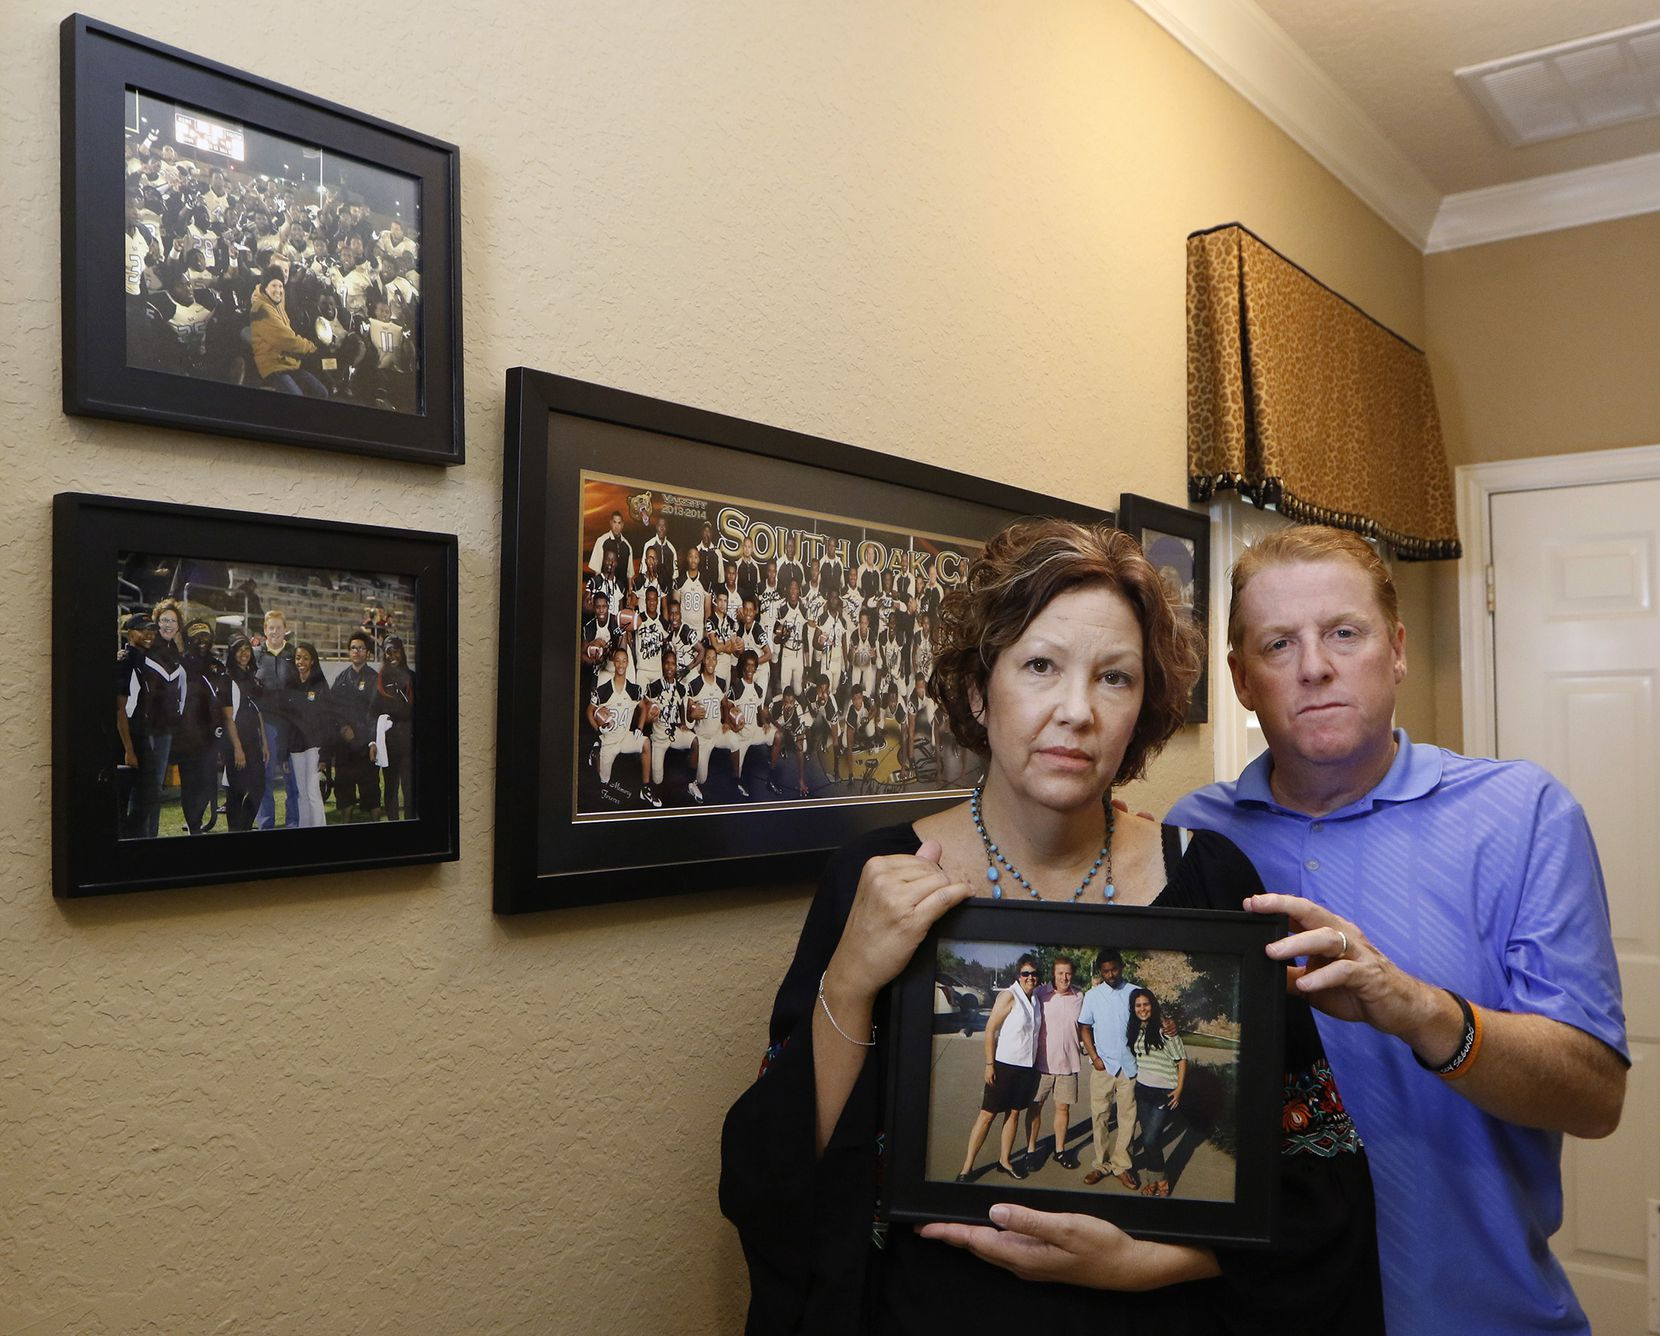 Lisa and Dave Stephenson hold a photograph of them with Thomas Johnson and Maria Paula in their home in Farmersville, Texas on Thursday, June 30, 2016. The photo was taken at their church in Plano in July 2014. Thomas Johnson, former Skyline and Texas A&M football star stayed as a guest in their home. Dave and his wife tried to rehabilitate Johnson before the murder of David Stevens while he was running at White Rock Lake on Oct. 12, 2015. (David Woo/The Dallas Morning News)